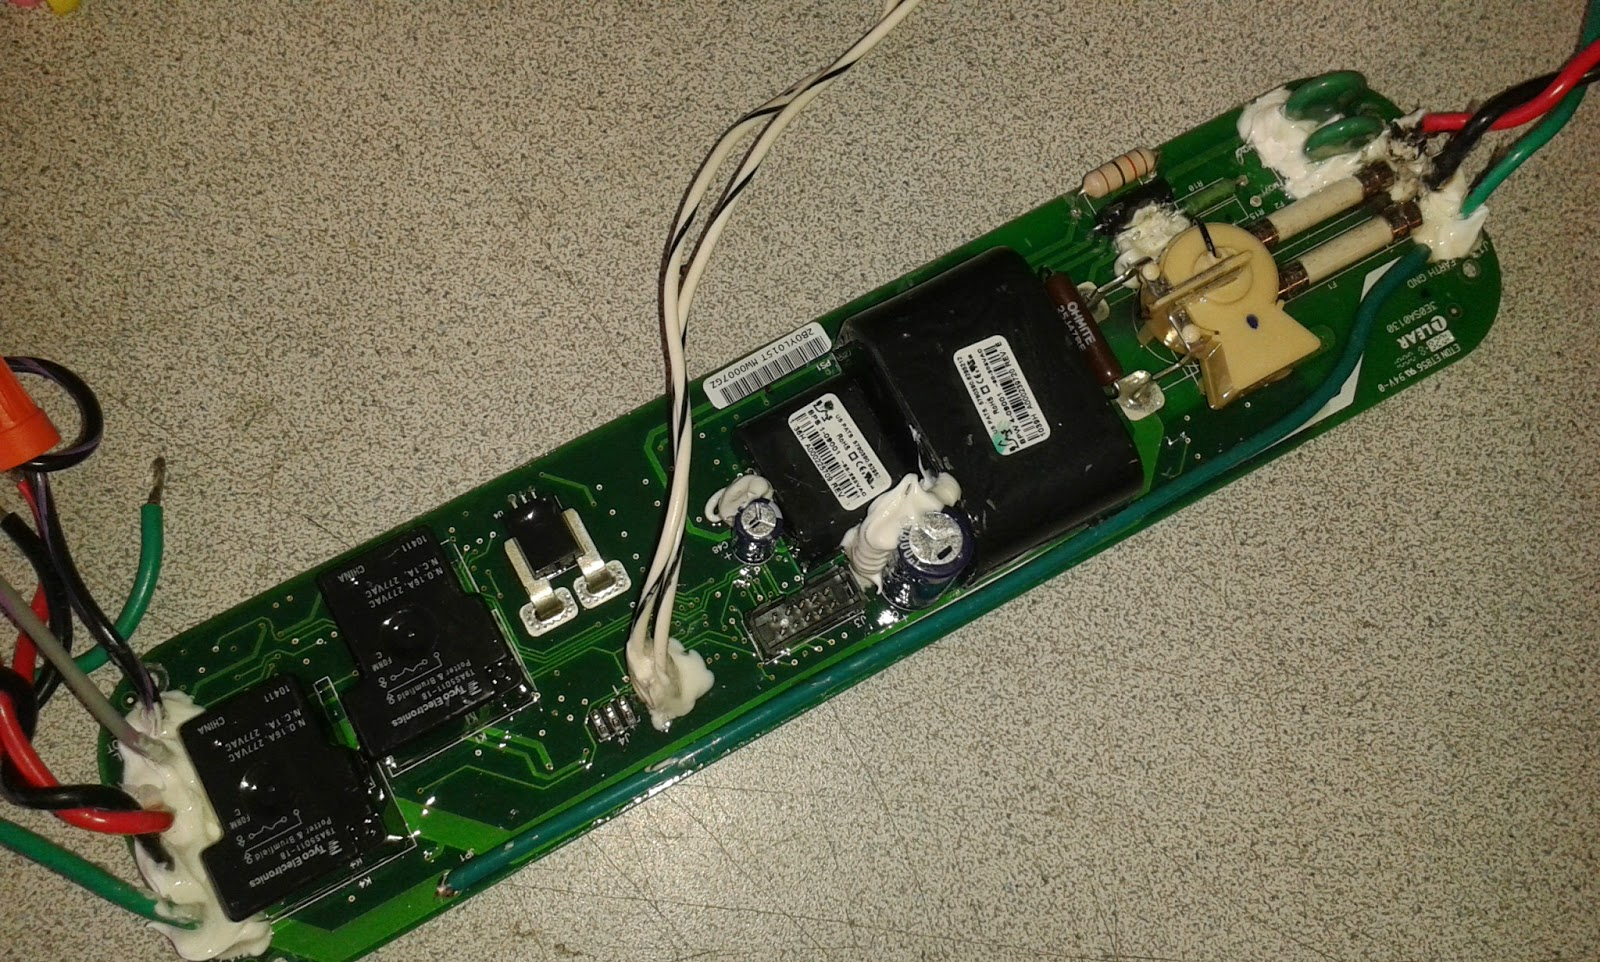 medium resolution of  case wiring coppell tv repair online blog repairing voltec spx el 50580 charger on car charger